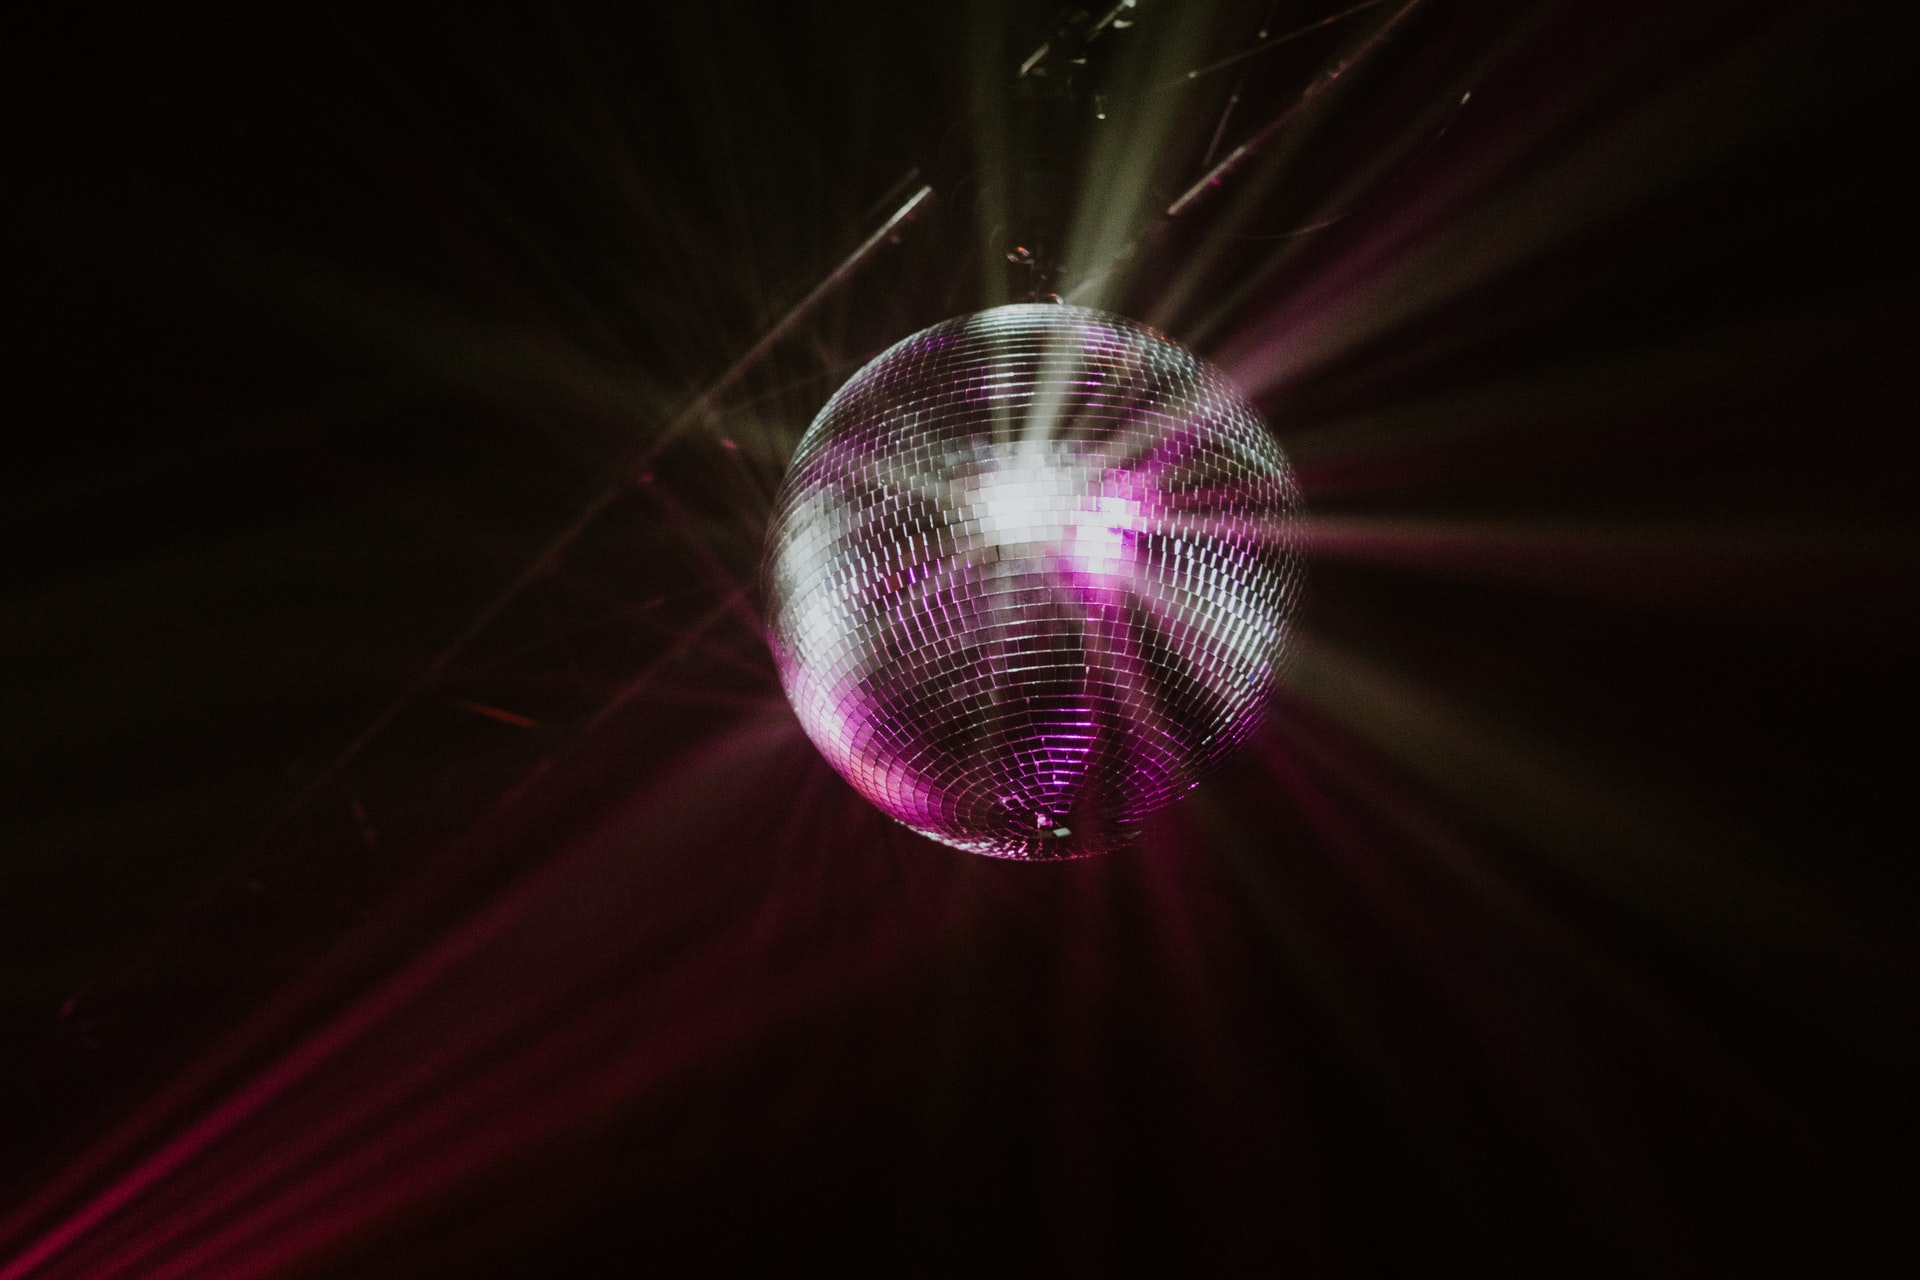 A Disco ball from a 70s music party.